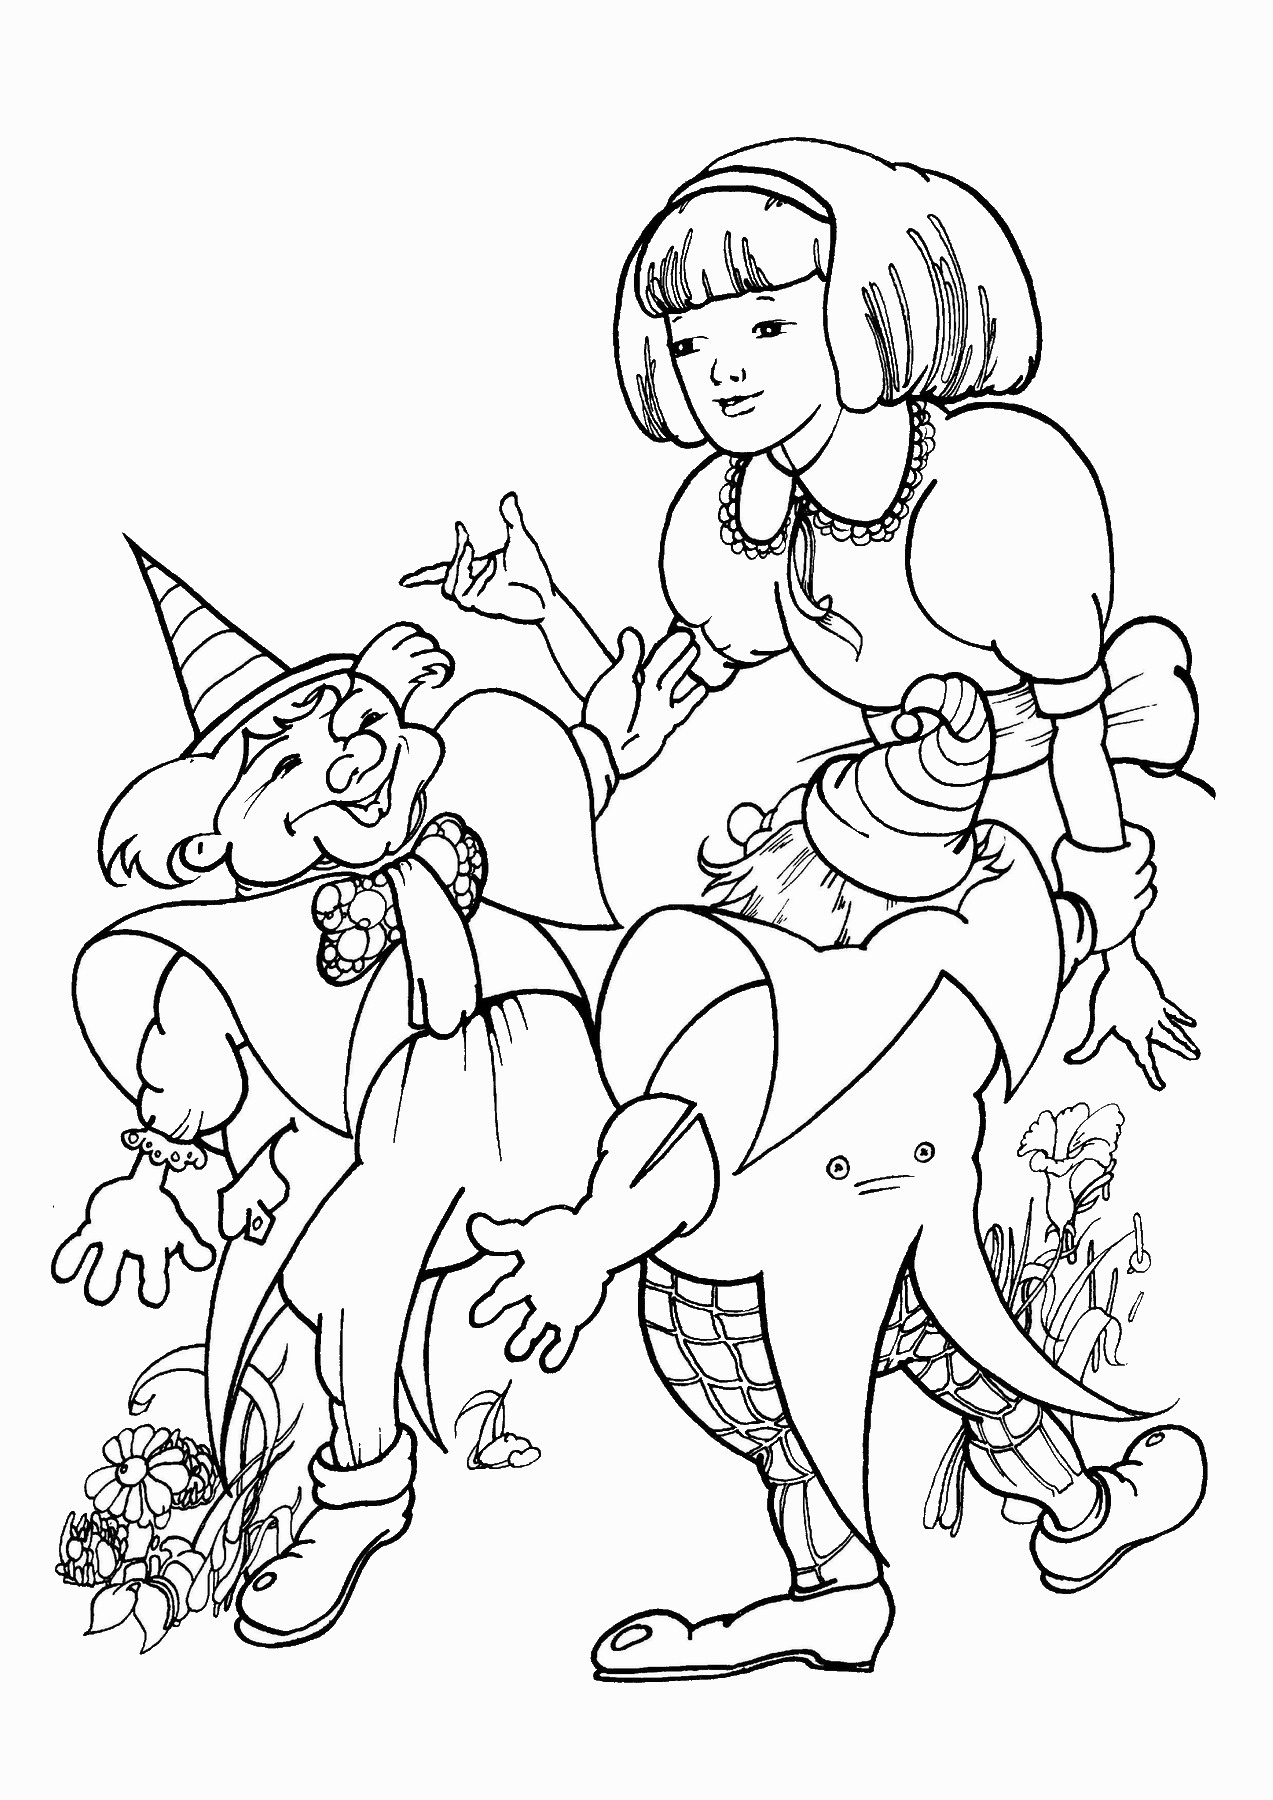 alice in wonderland coloring pages alice in wonderland coloring pages caterpillar for kids wonderland coloring in pages alice